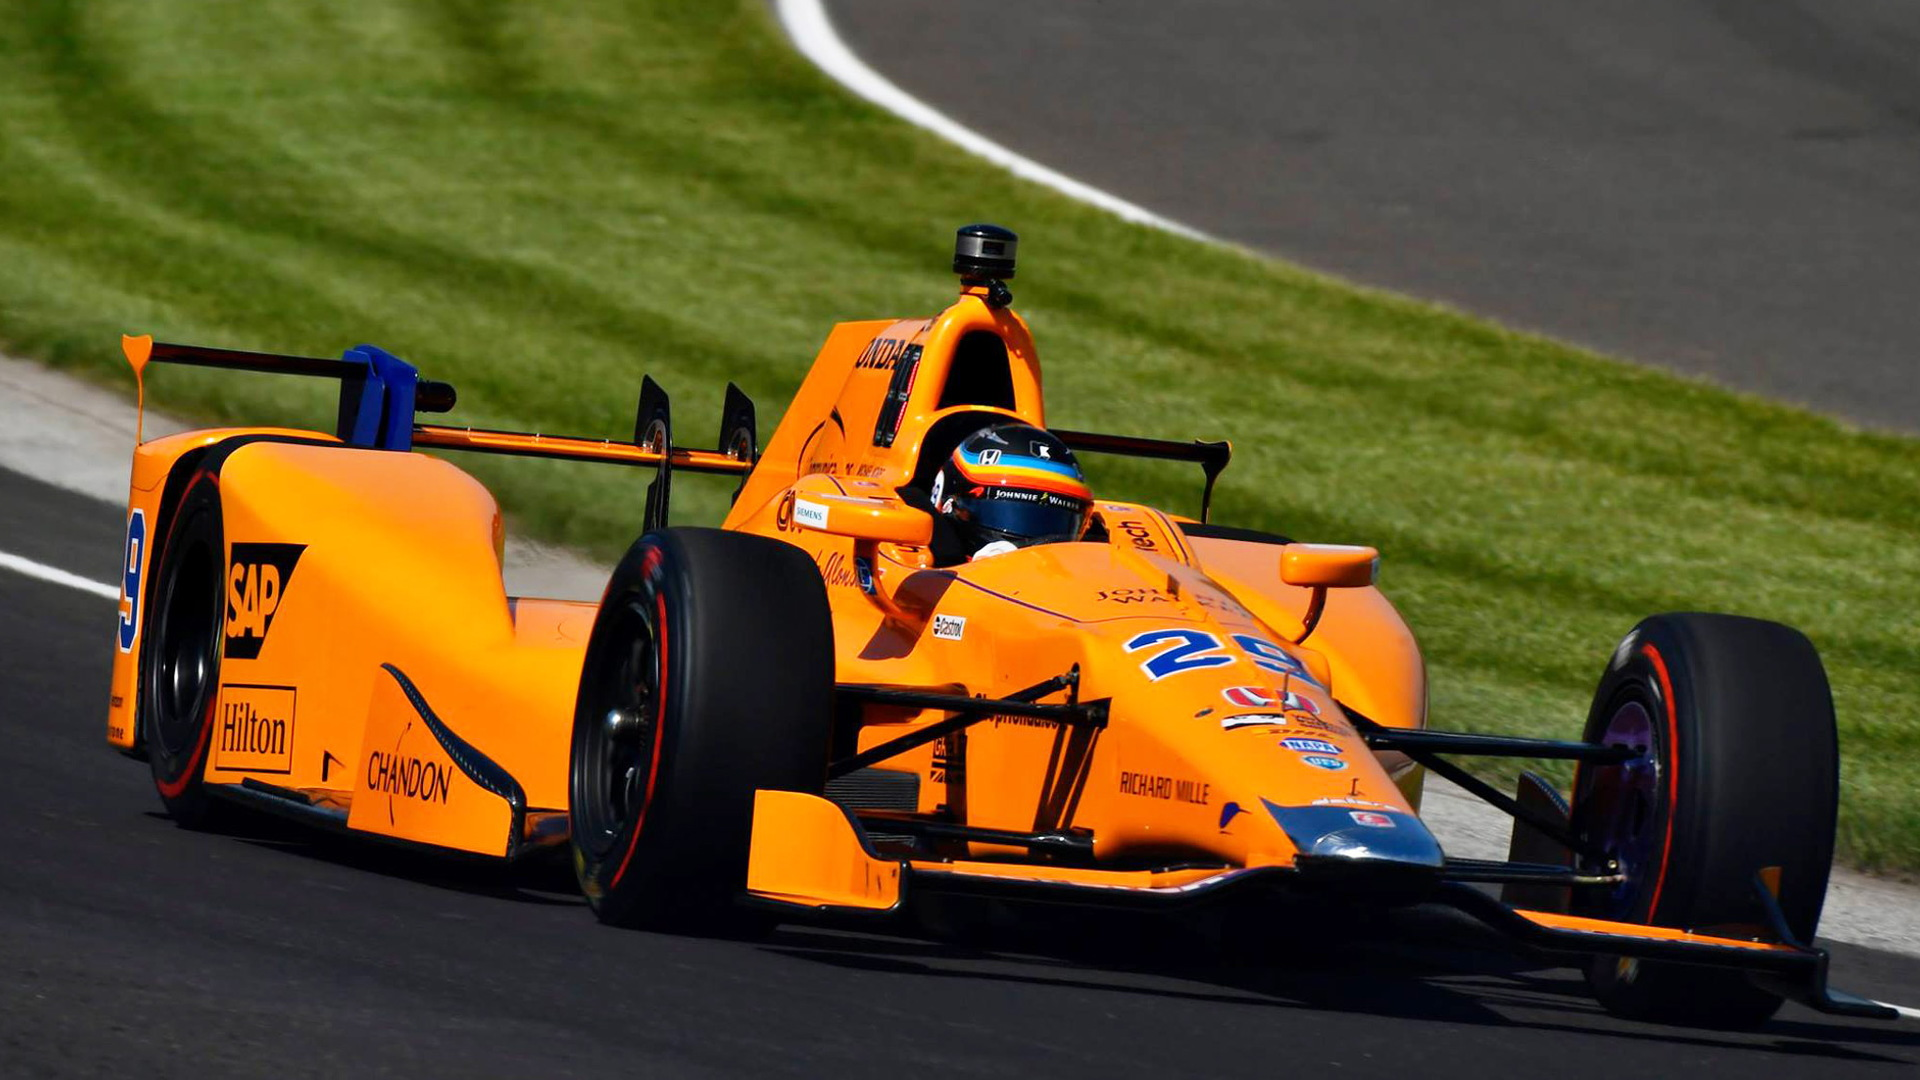 Fernando Alonso during qualifying for the 2017 Indianapolis 500